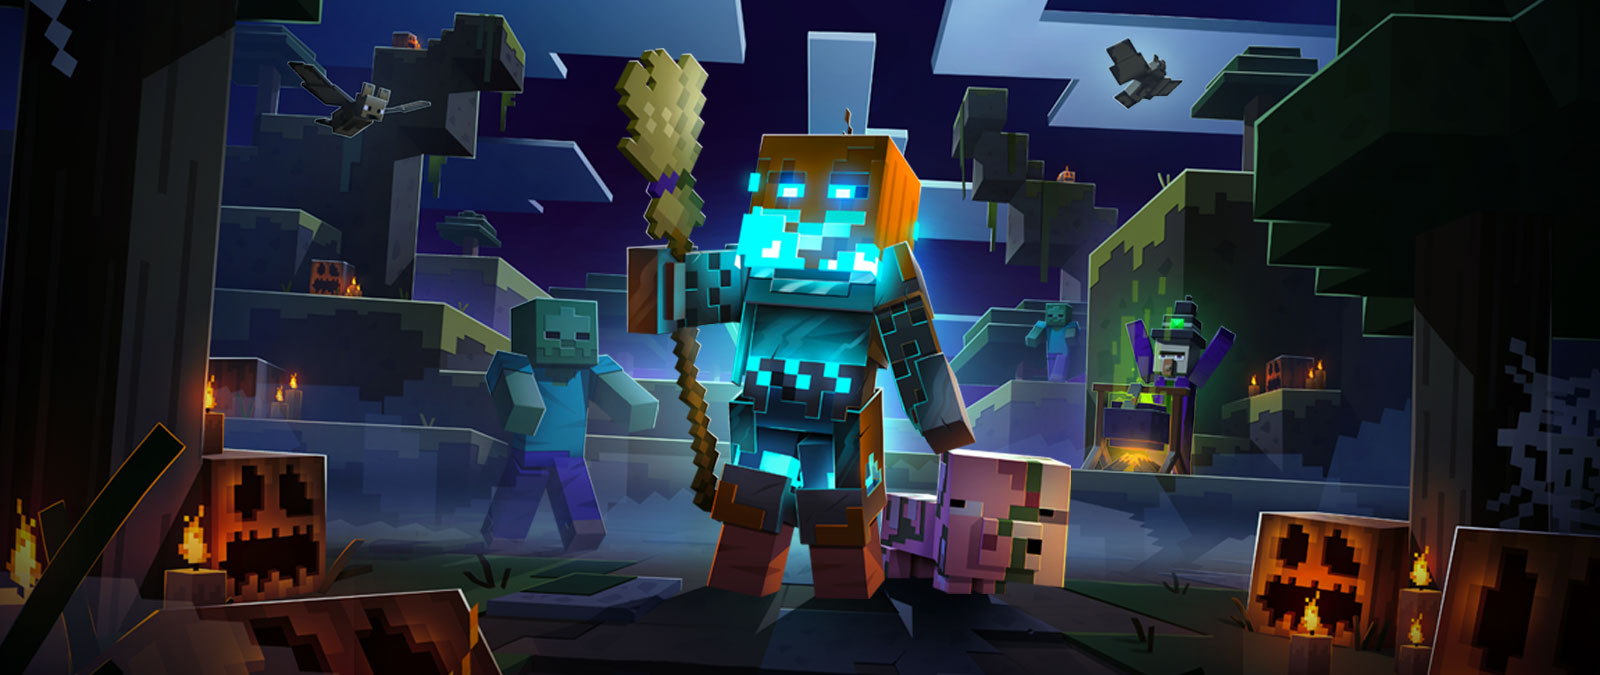 Minecraft Dungeons character in a jack-o-lantern skin holding a broom with pumpkins, zombies, bats, and a witch villager.